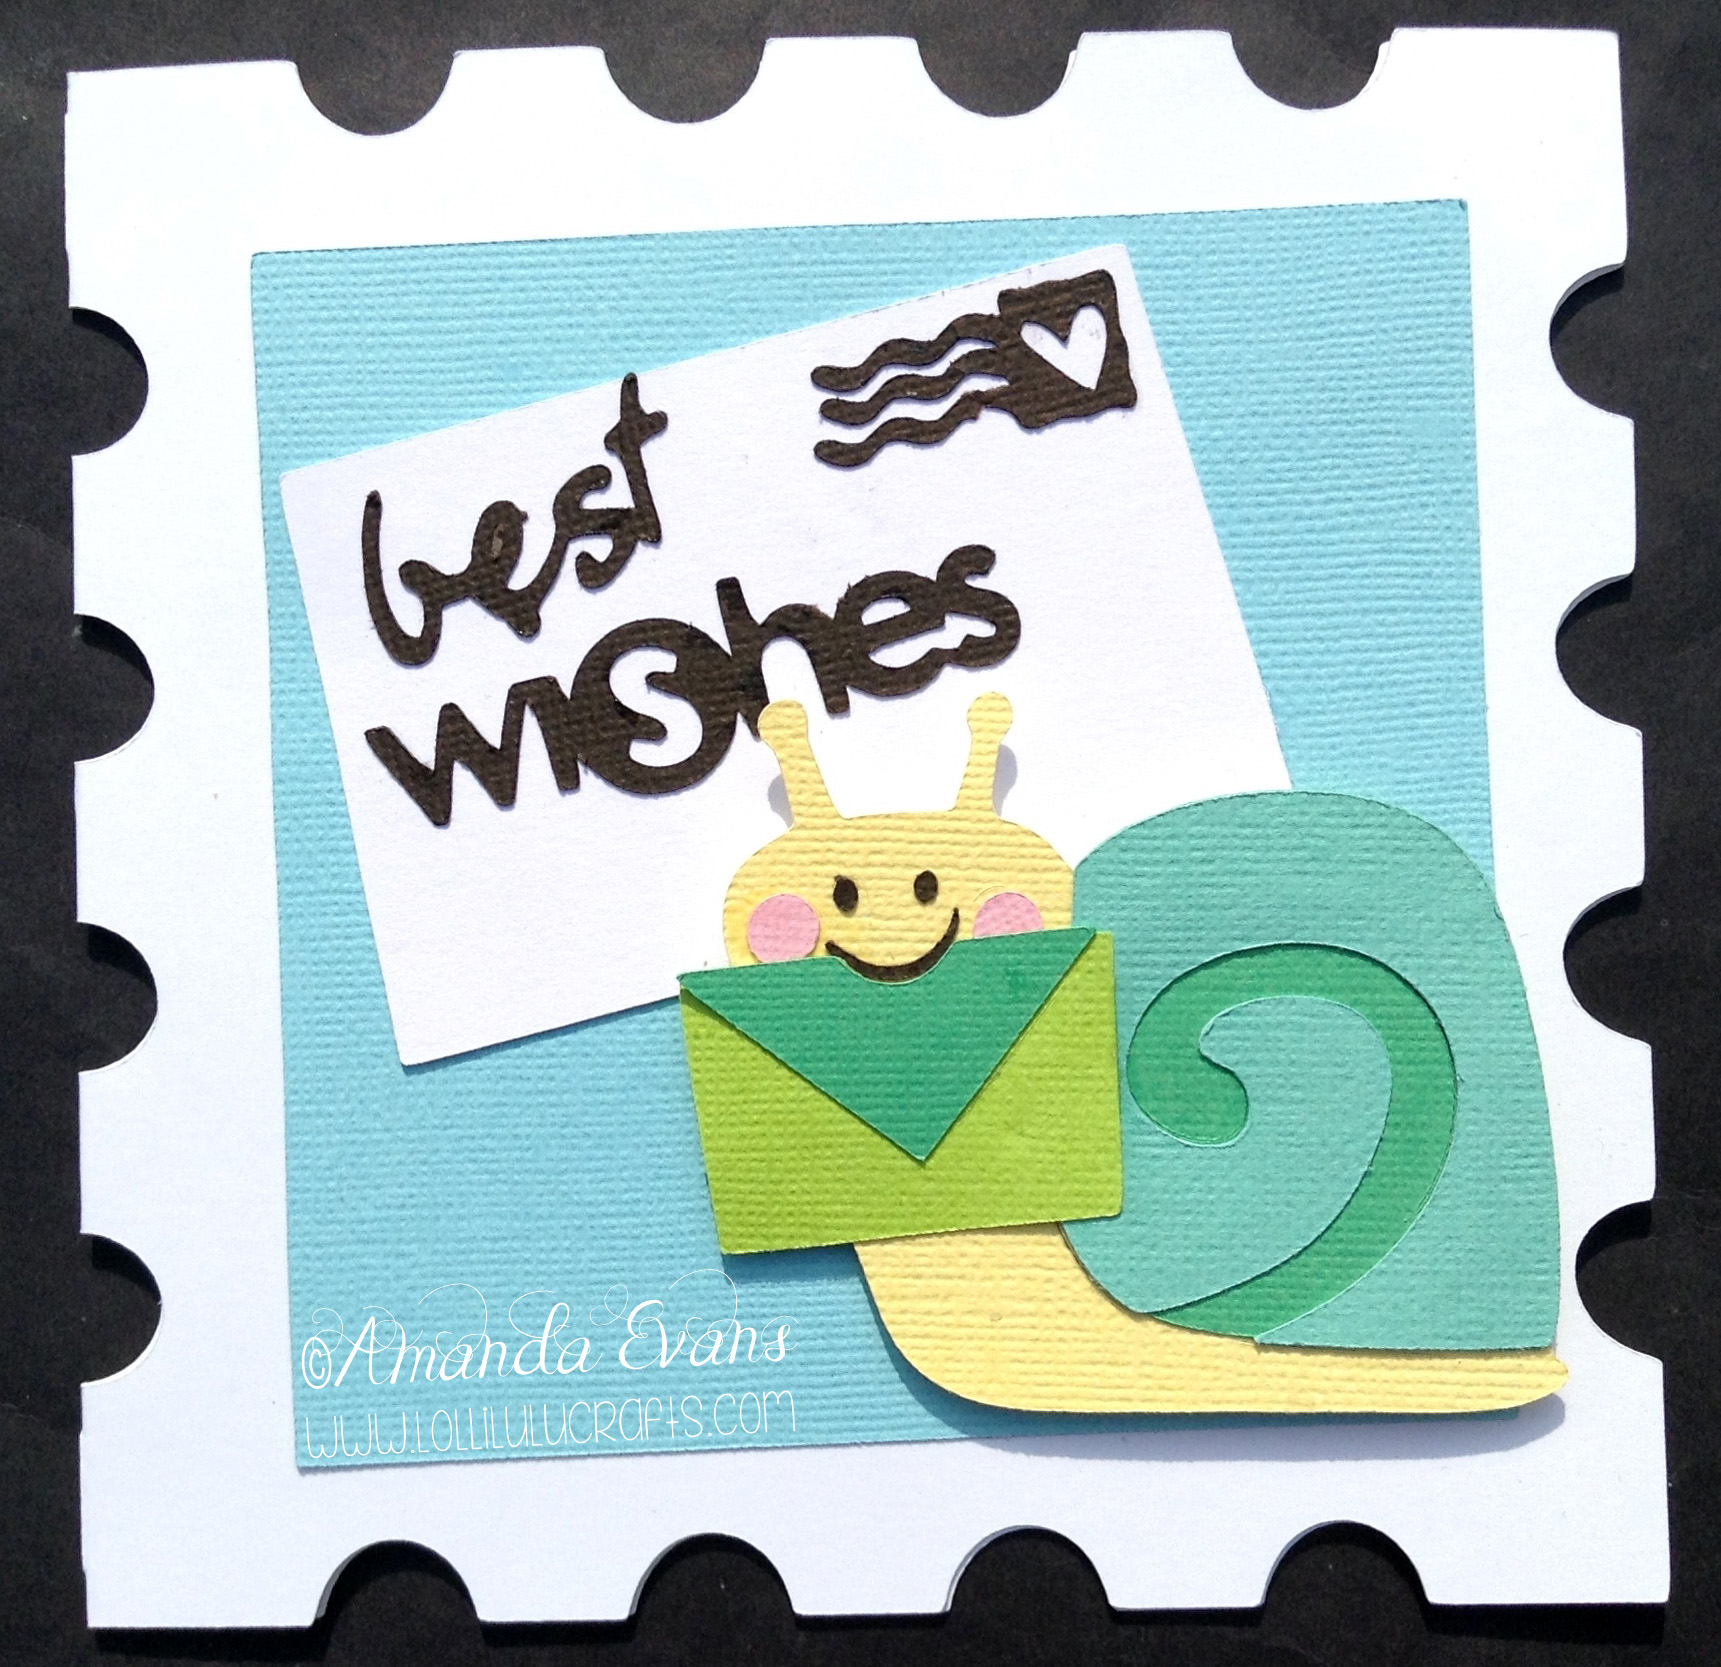 Cricut birthday bash snail mail card project files lolli for Imagine crafts craft mat